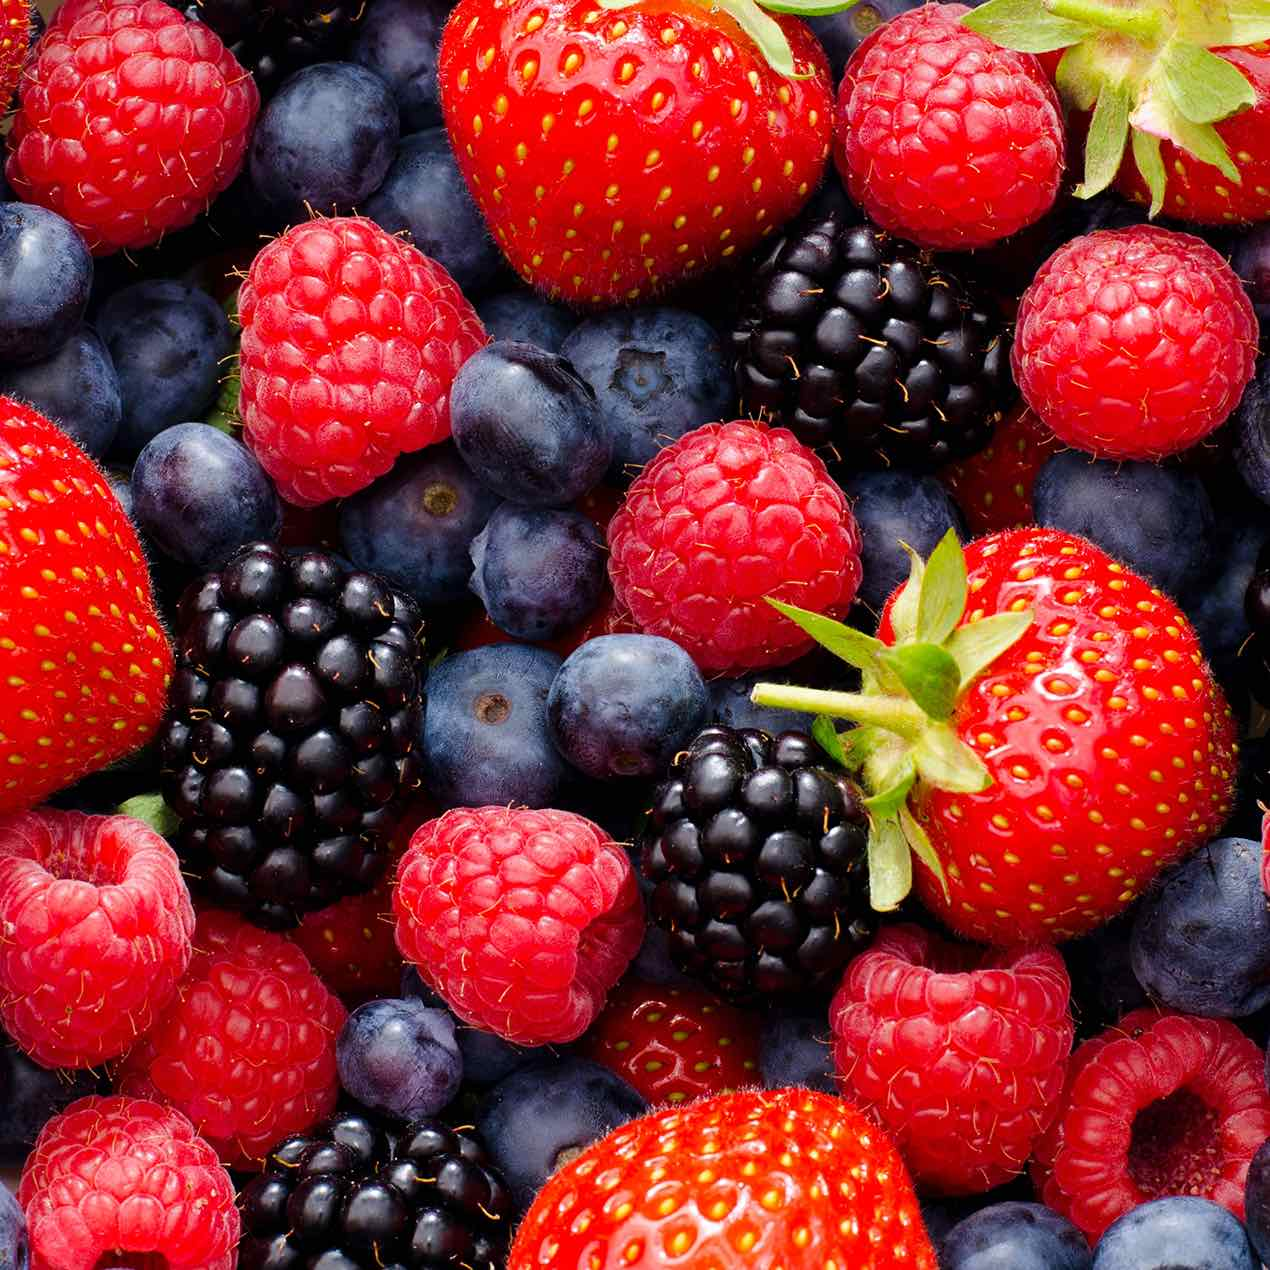 Berries Category Image